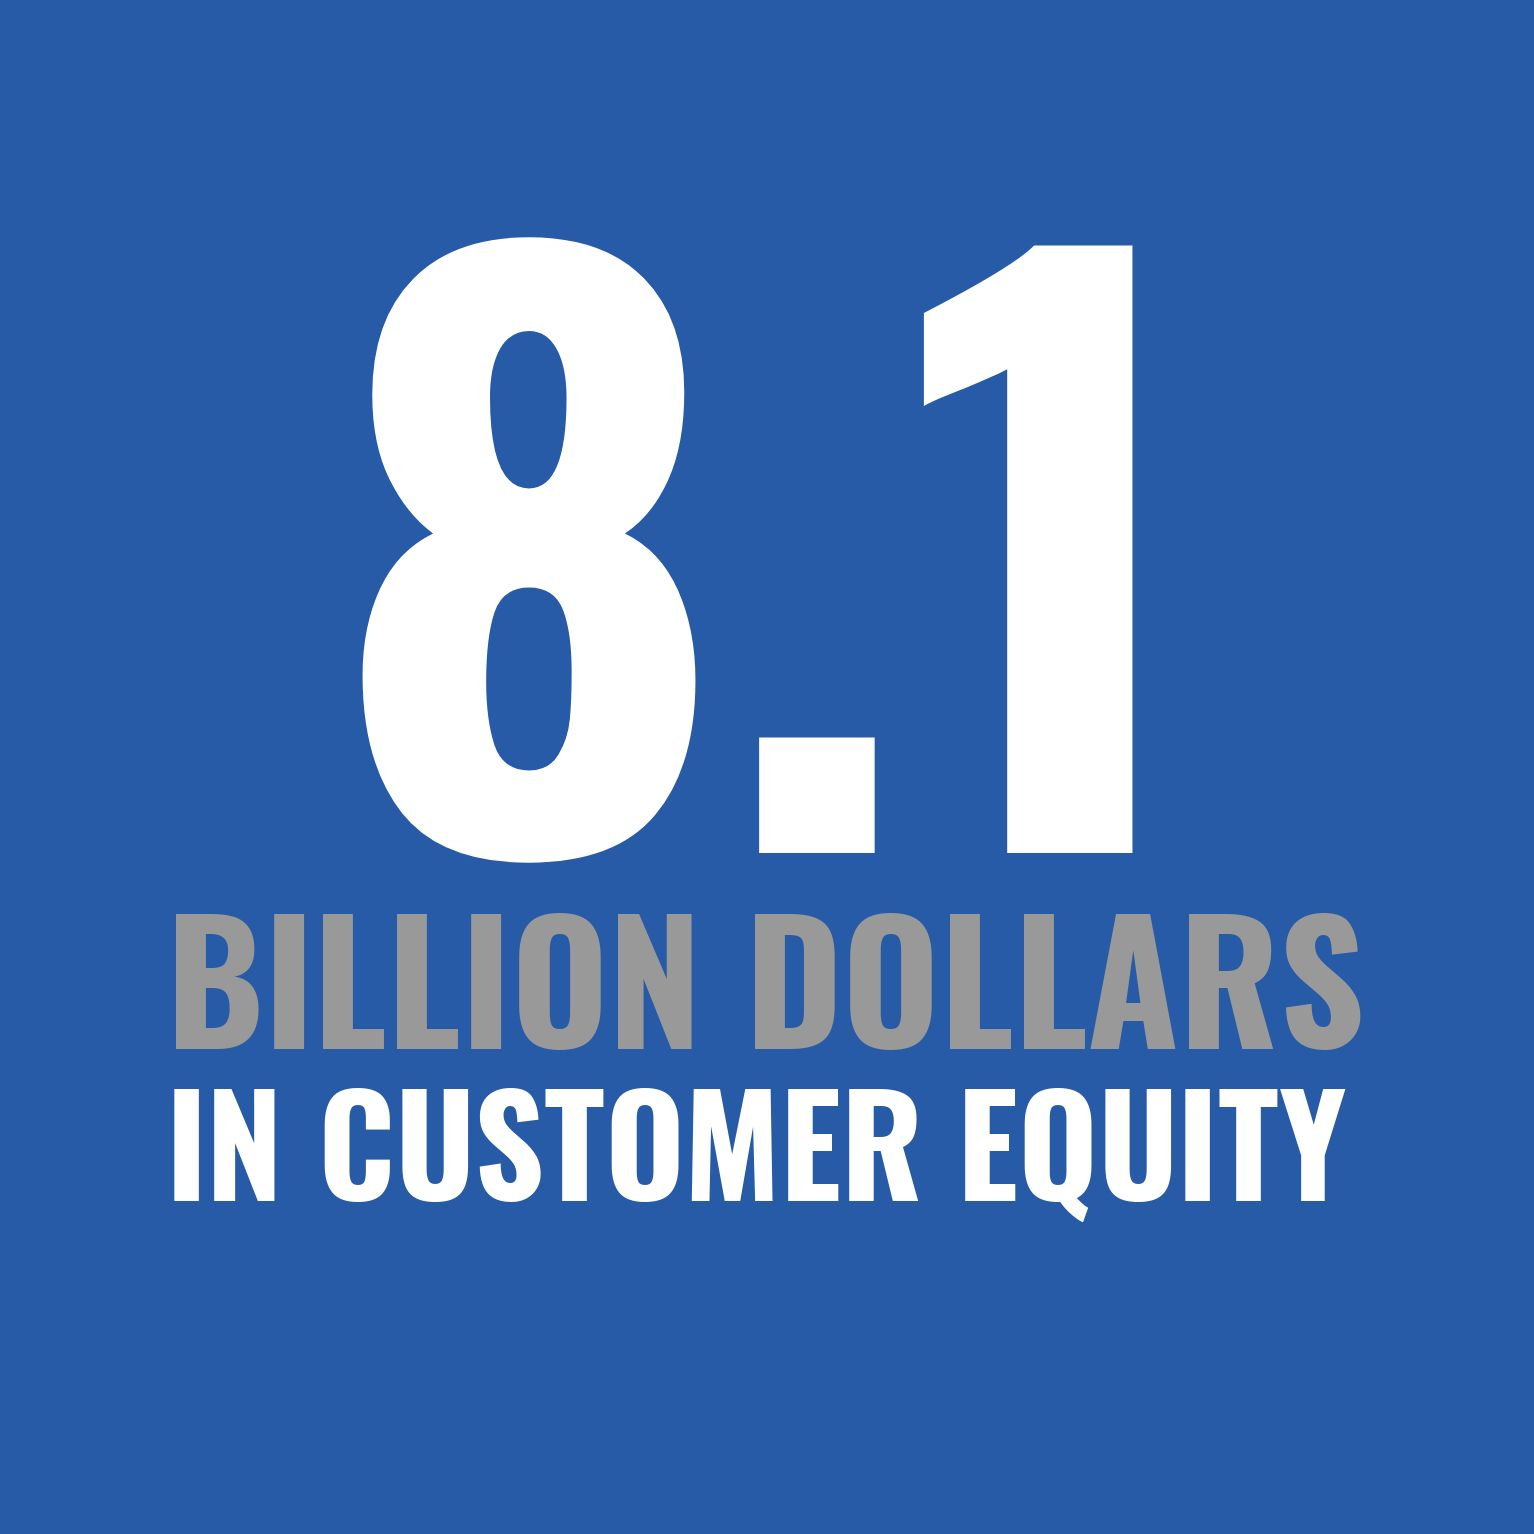 Eight point One Billion dollars in customer Equity